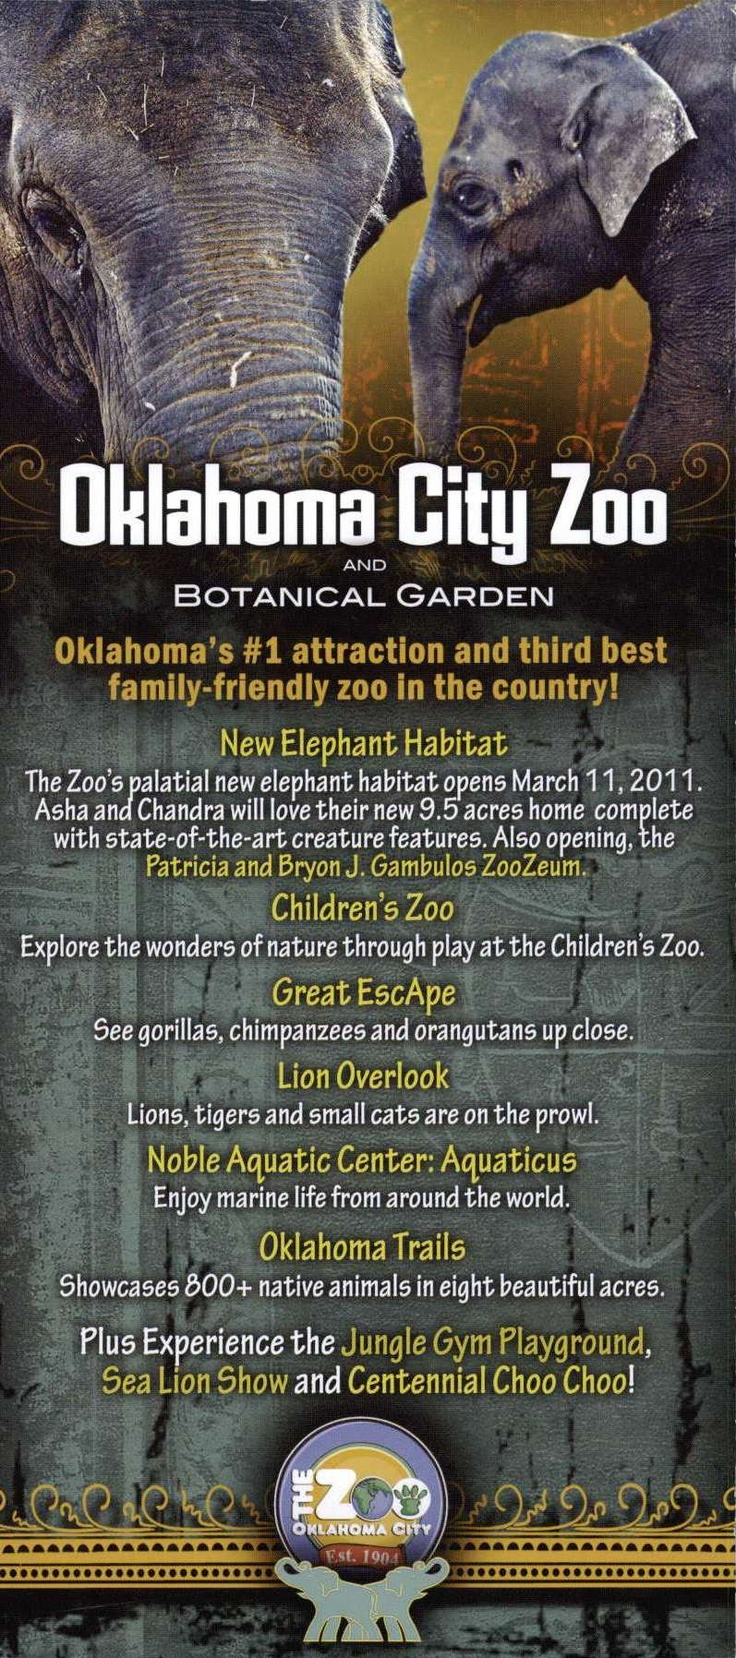 Oklahoma City Zoo!